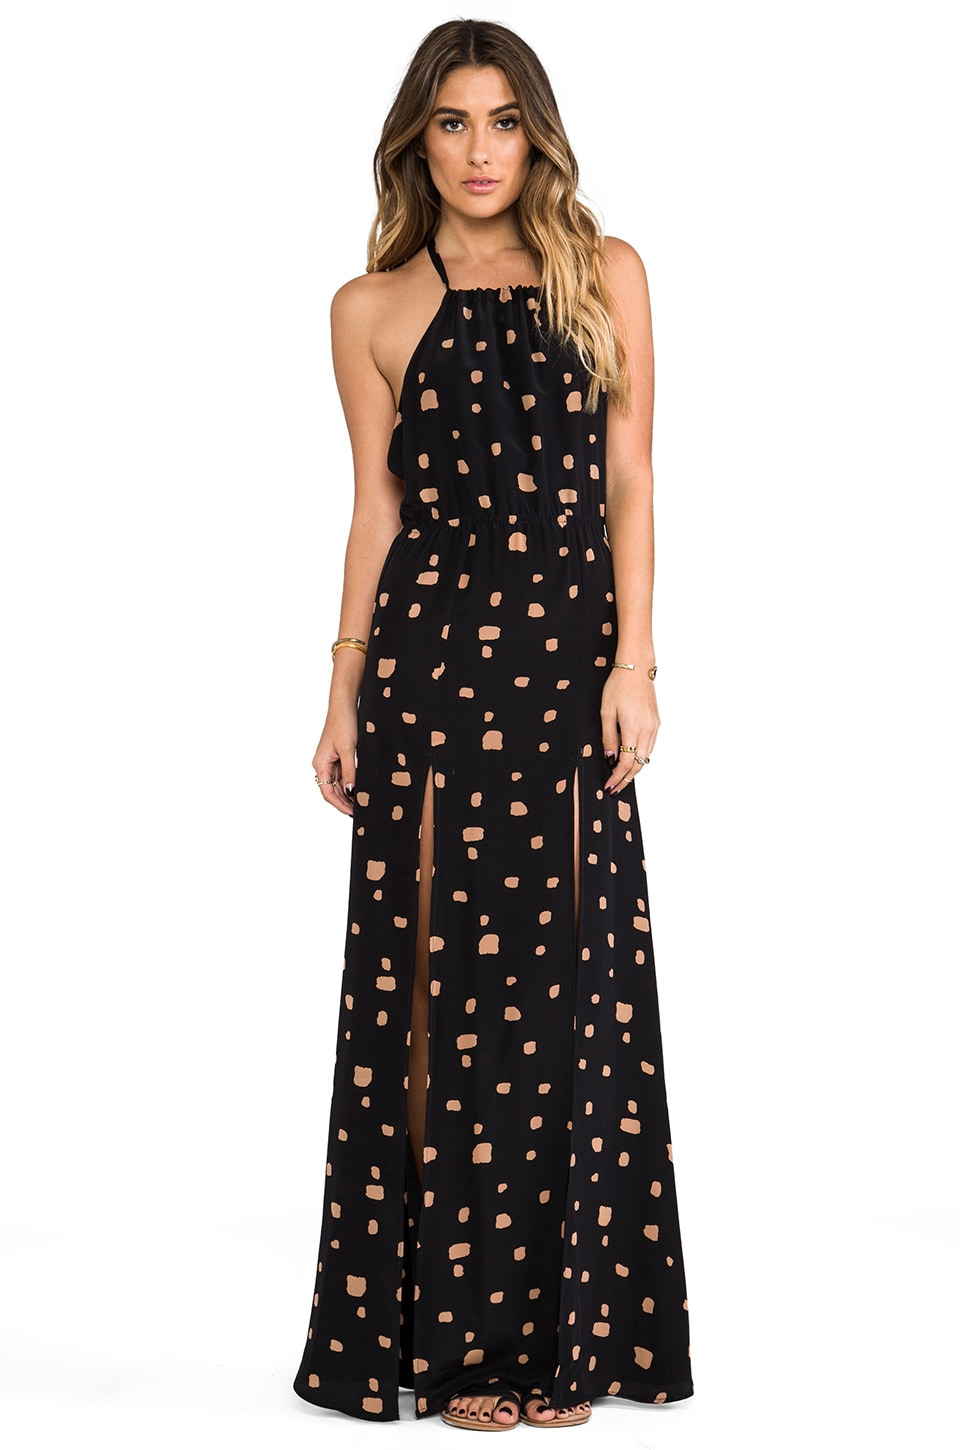 STONE_COLD_FOX Onyx Gown in Giraffe Print